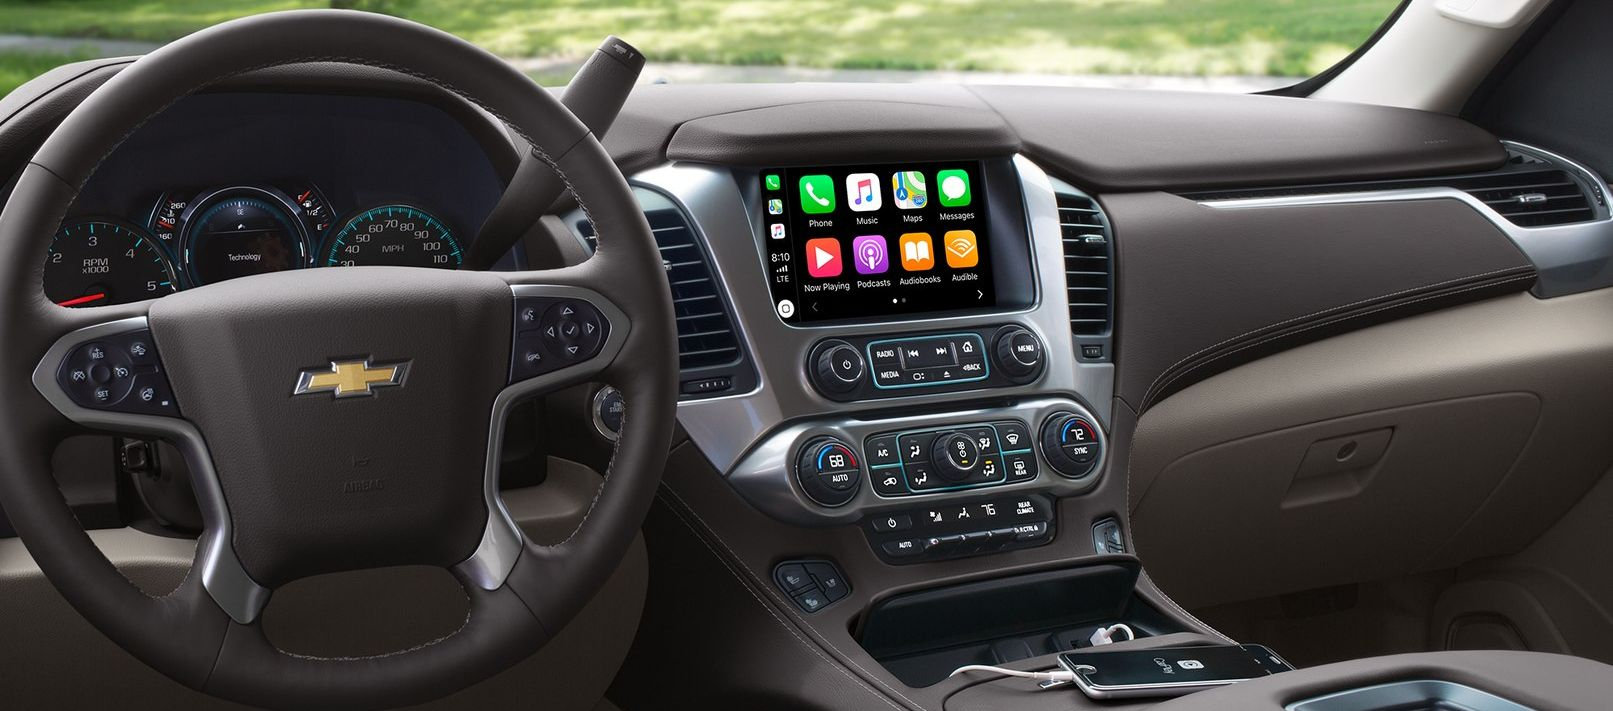 Technology in the Chevy Suburban